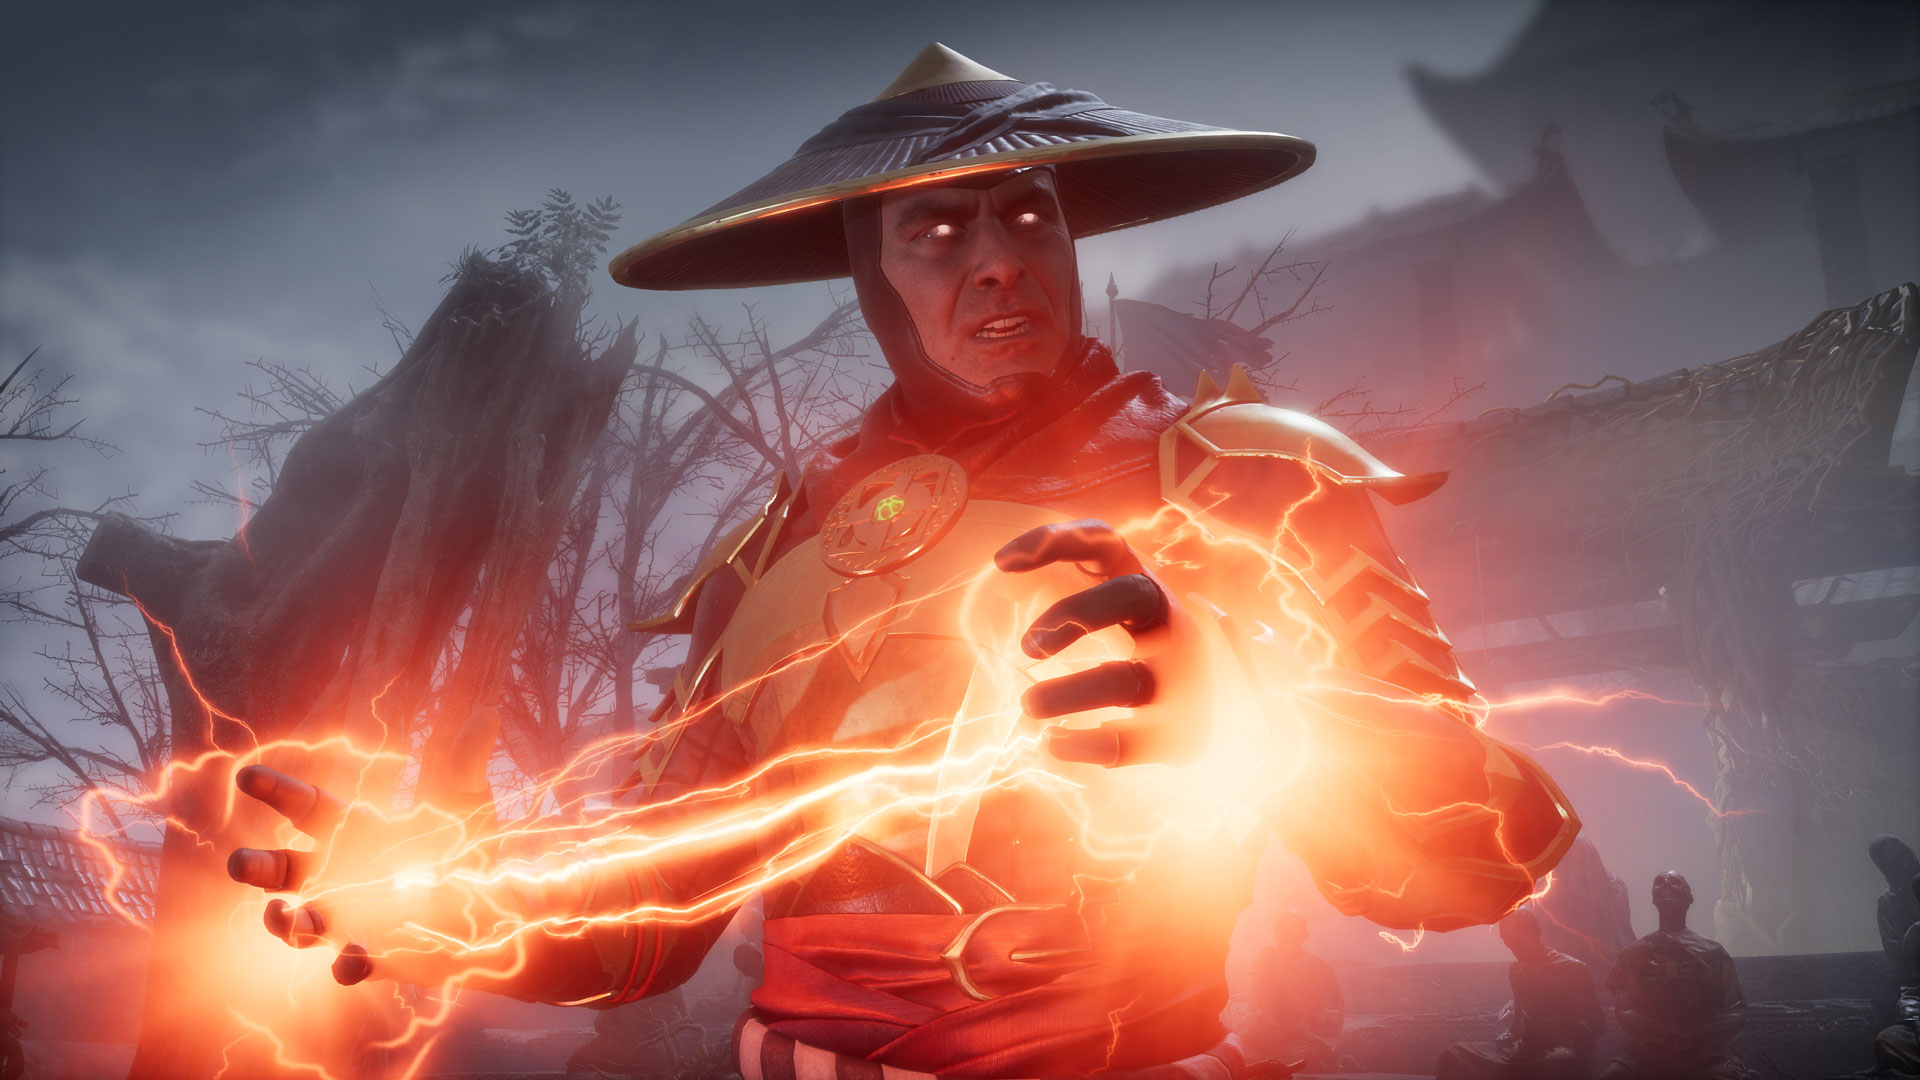 Mortal Kombat 11 has microtransactions, but they're just 'time savers'